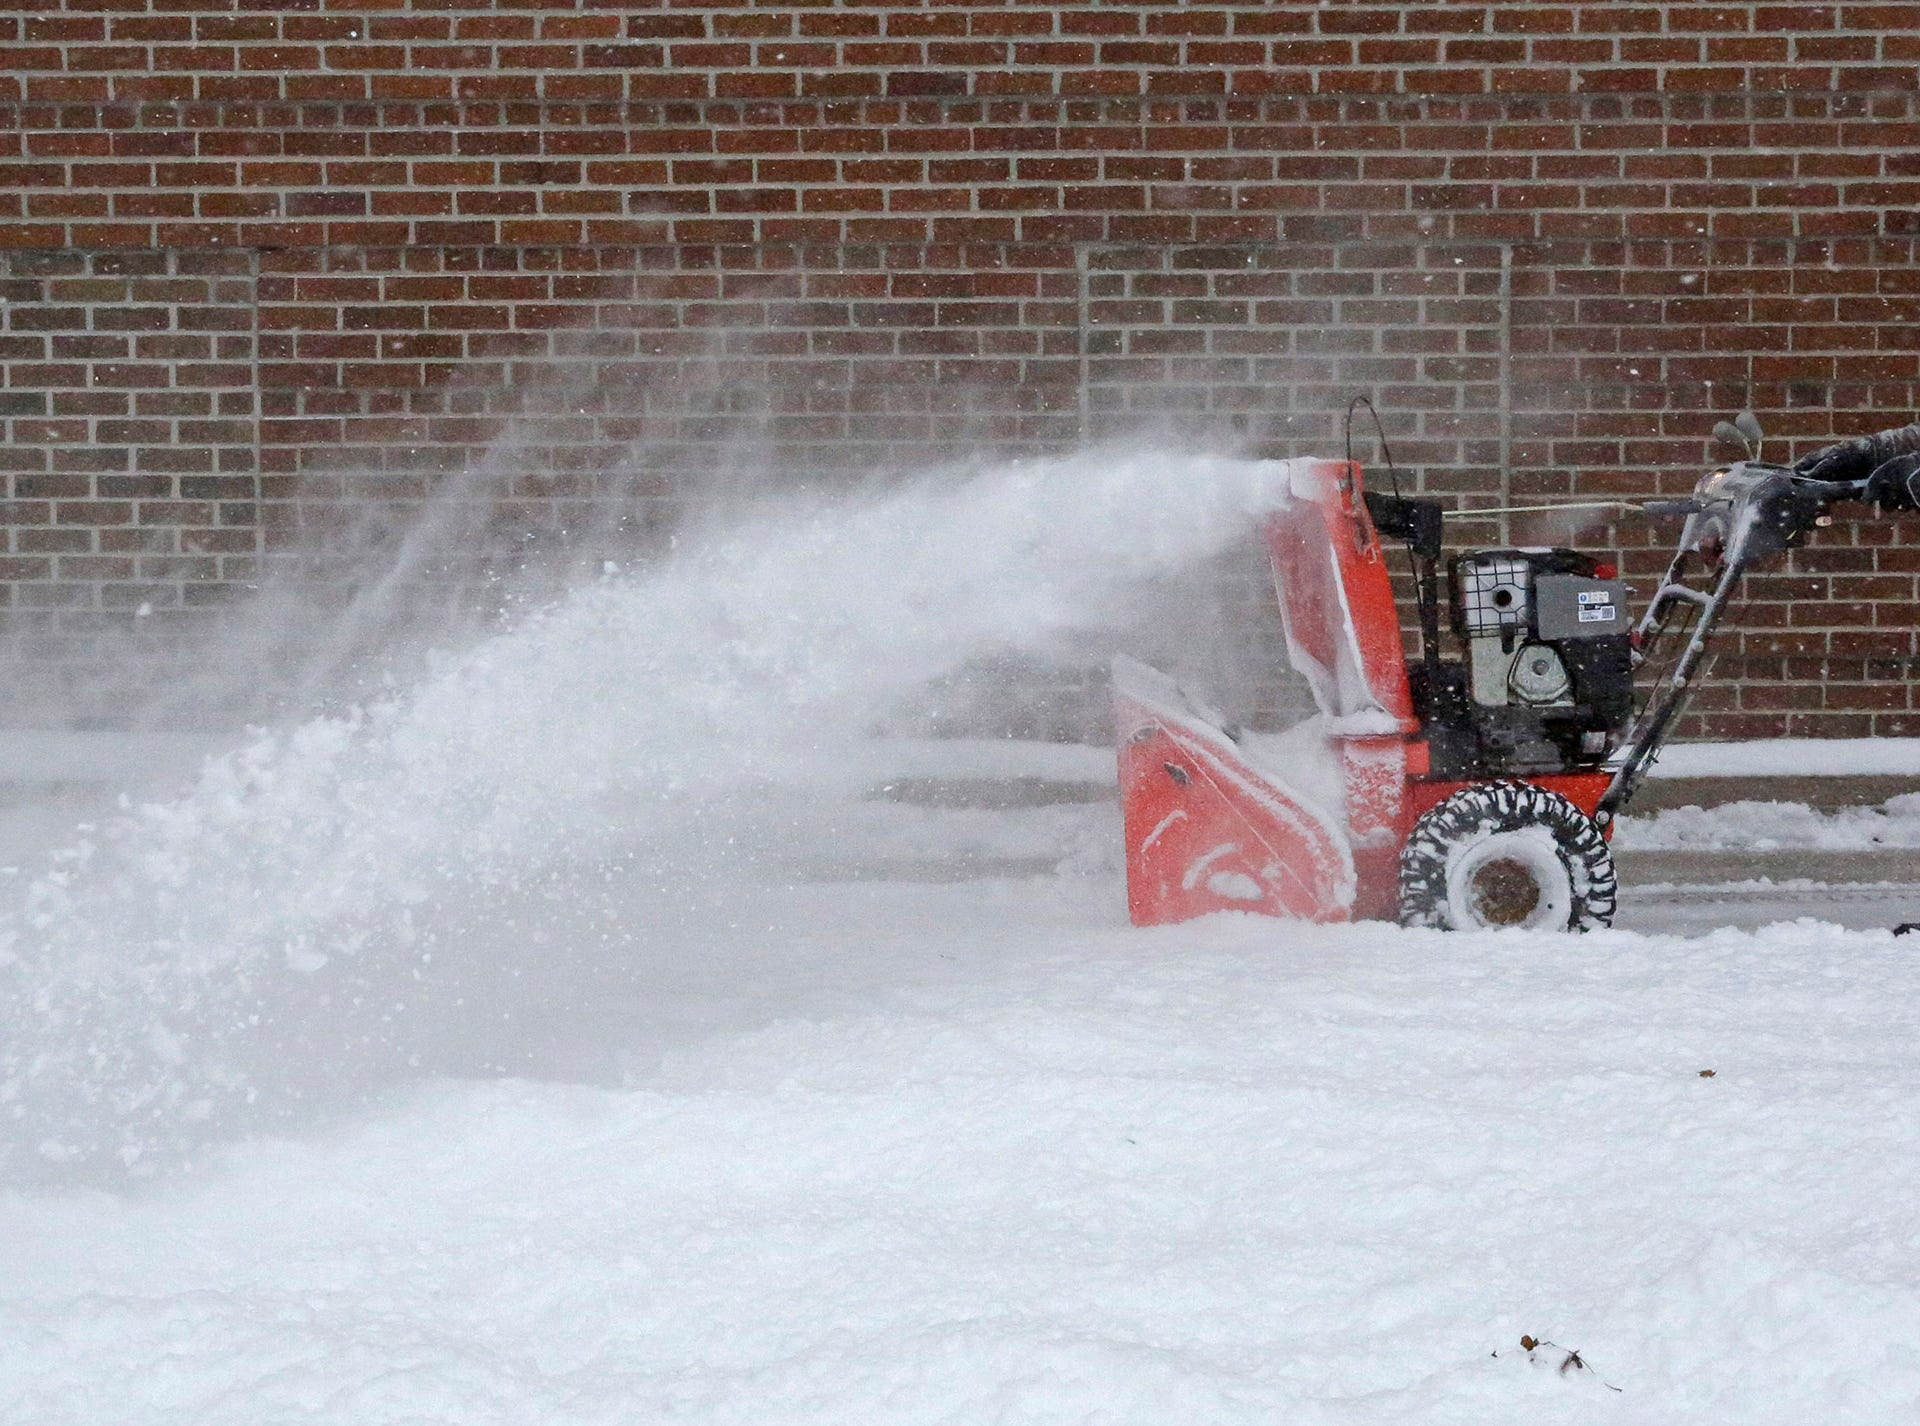 Sheboygan County's Mark Larson removes snow at the Human Services building, Saturday, January 19, 2019, in Sheboygan, Wis.